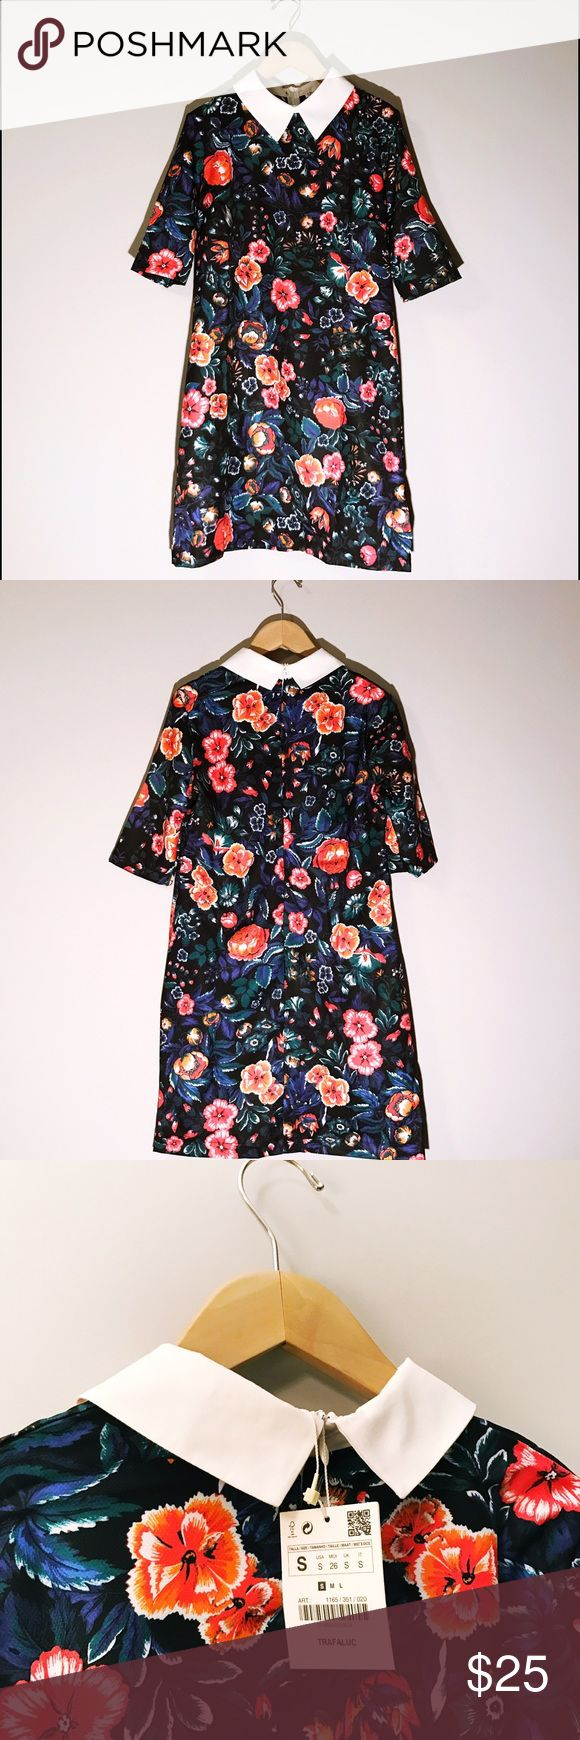 """Zara Floral Dress with White Collar I recently purchased this perfect-for-Spring dress through Posh. Disappointingly, when I tried it on, it didn't fit, so I'm now re-Poshing it at the same price I purchased it for. Some Zara pieces run small and this is true for this dress. It's a small small...more like an extra-small. The vibrant floral pattern is polyester while the white collar is cotton. Unlined. Back zipper. Dress length is 31.5""""/Sleeve length: 12"""". Price is firm. Zara Dresses Mini"""